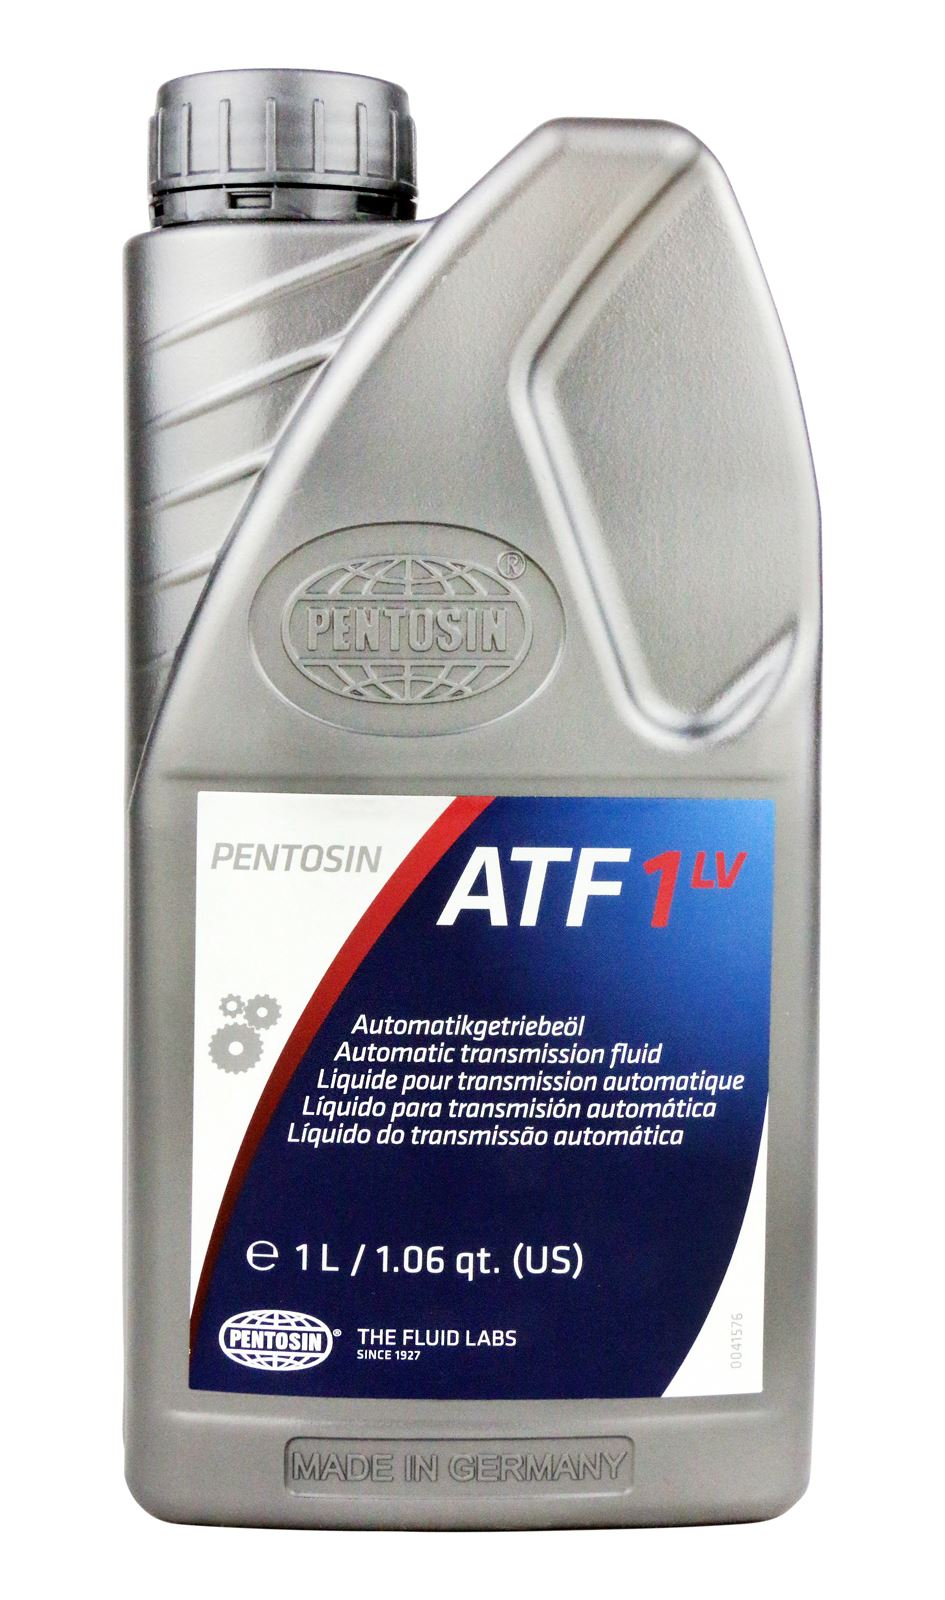 Details about Pentosin ATF-1 LV Auto Gearbox Fluid Oil For ZF 6 & 8 Speed  Transmissions